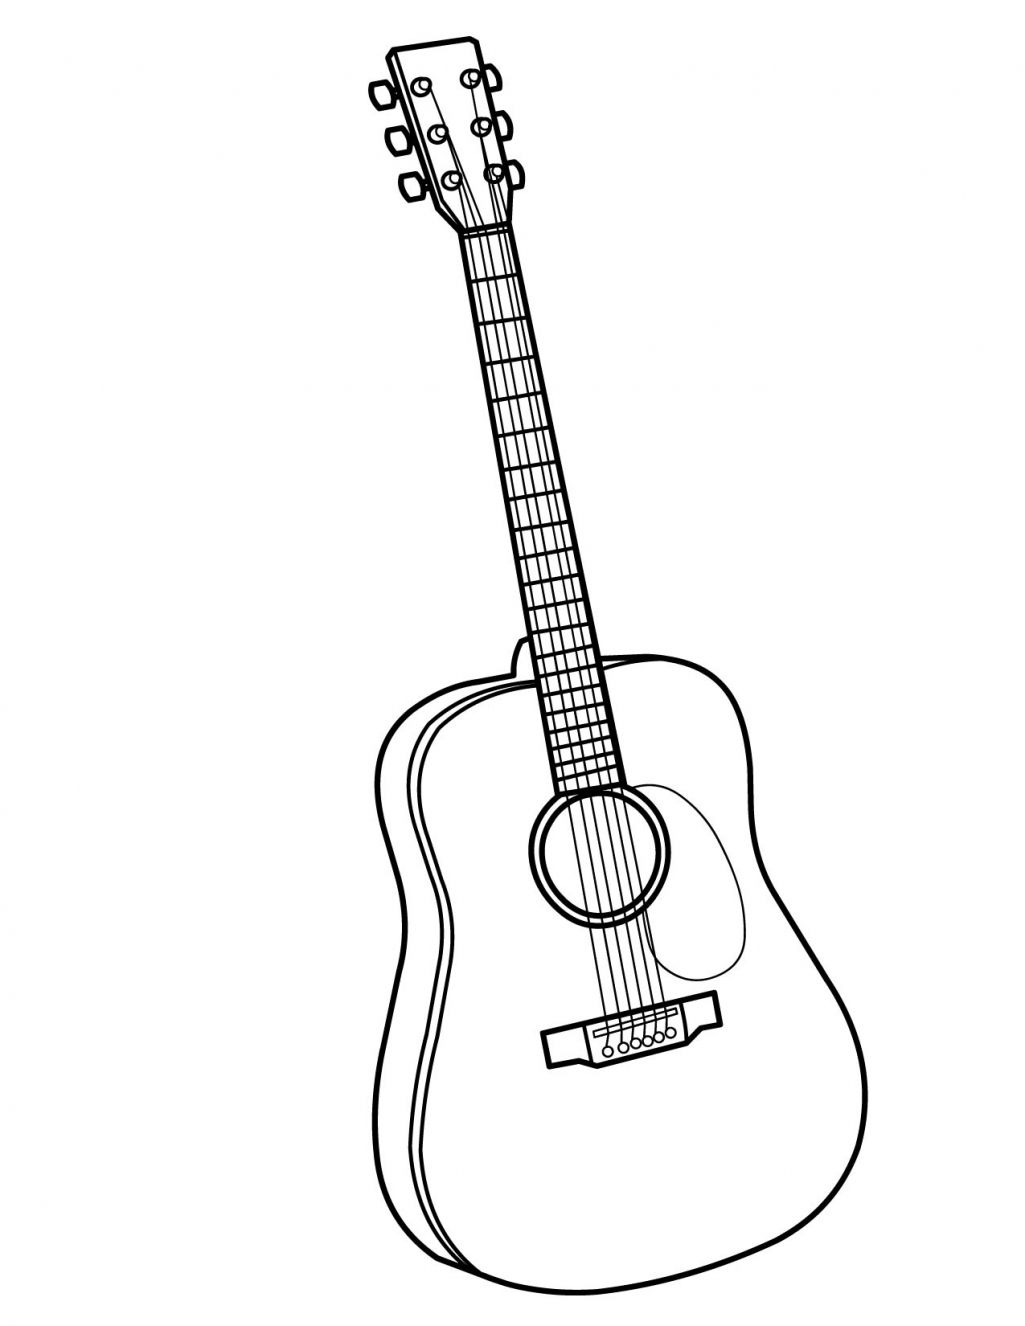 Gutair Colouring Pages Printable Colouring Pictures Of Musical